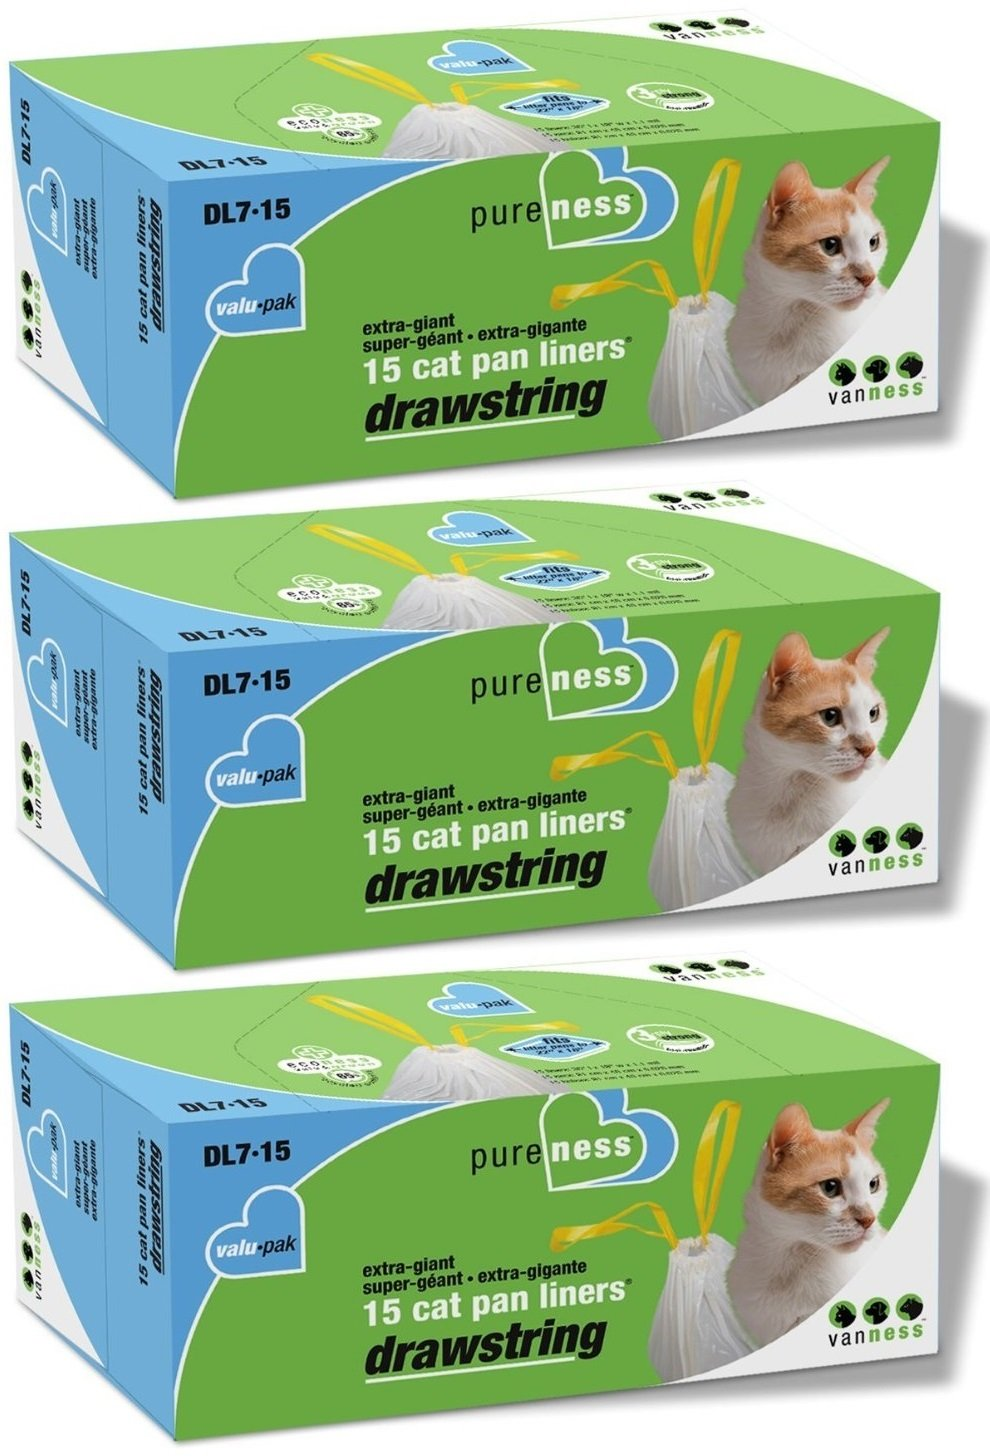 Van Ness DL715 PureNess Extra Giant Drawstring Cat Pan Liner, 15-Count Van Ness Products